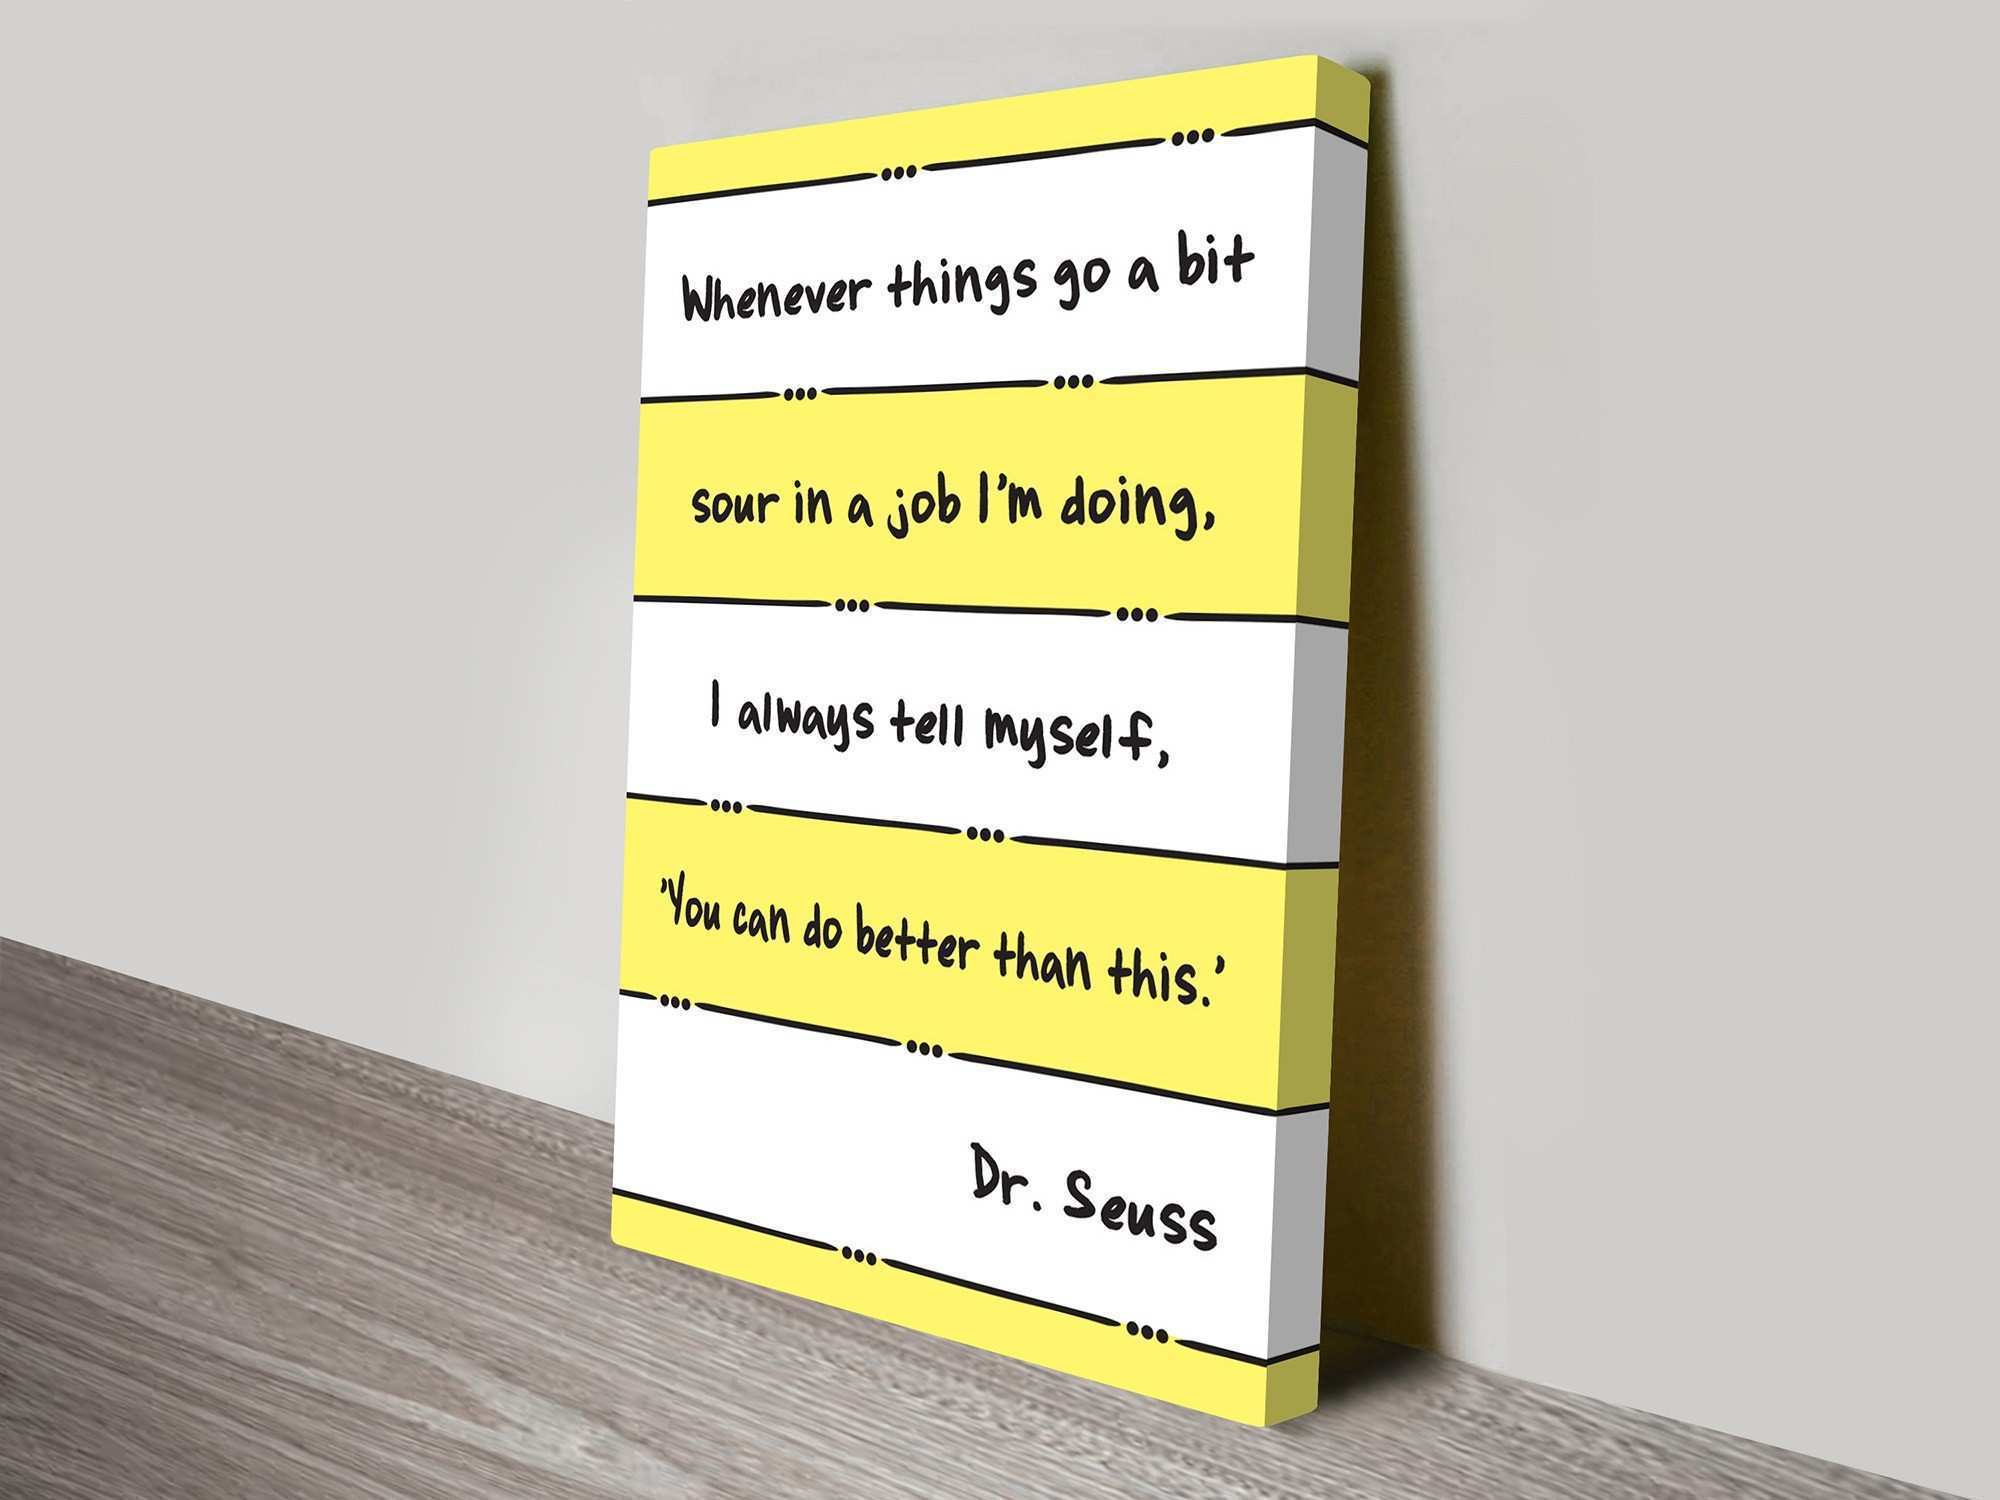 Dr Seuss Wall Art Awesome Old Fashioned Dr who Wall Art Inspiration ...